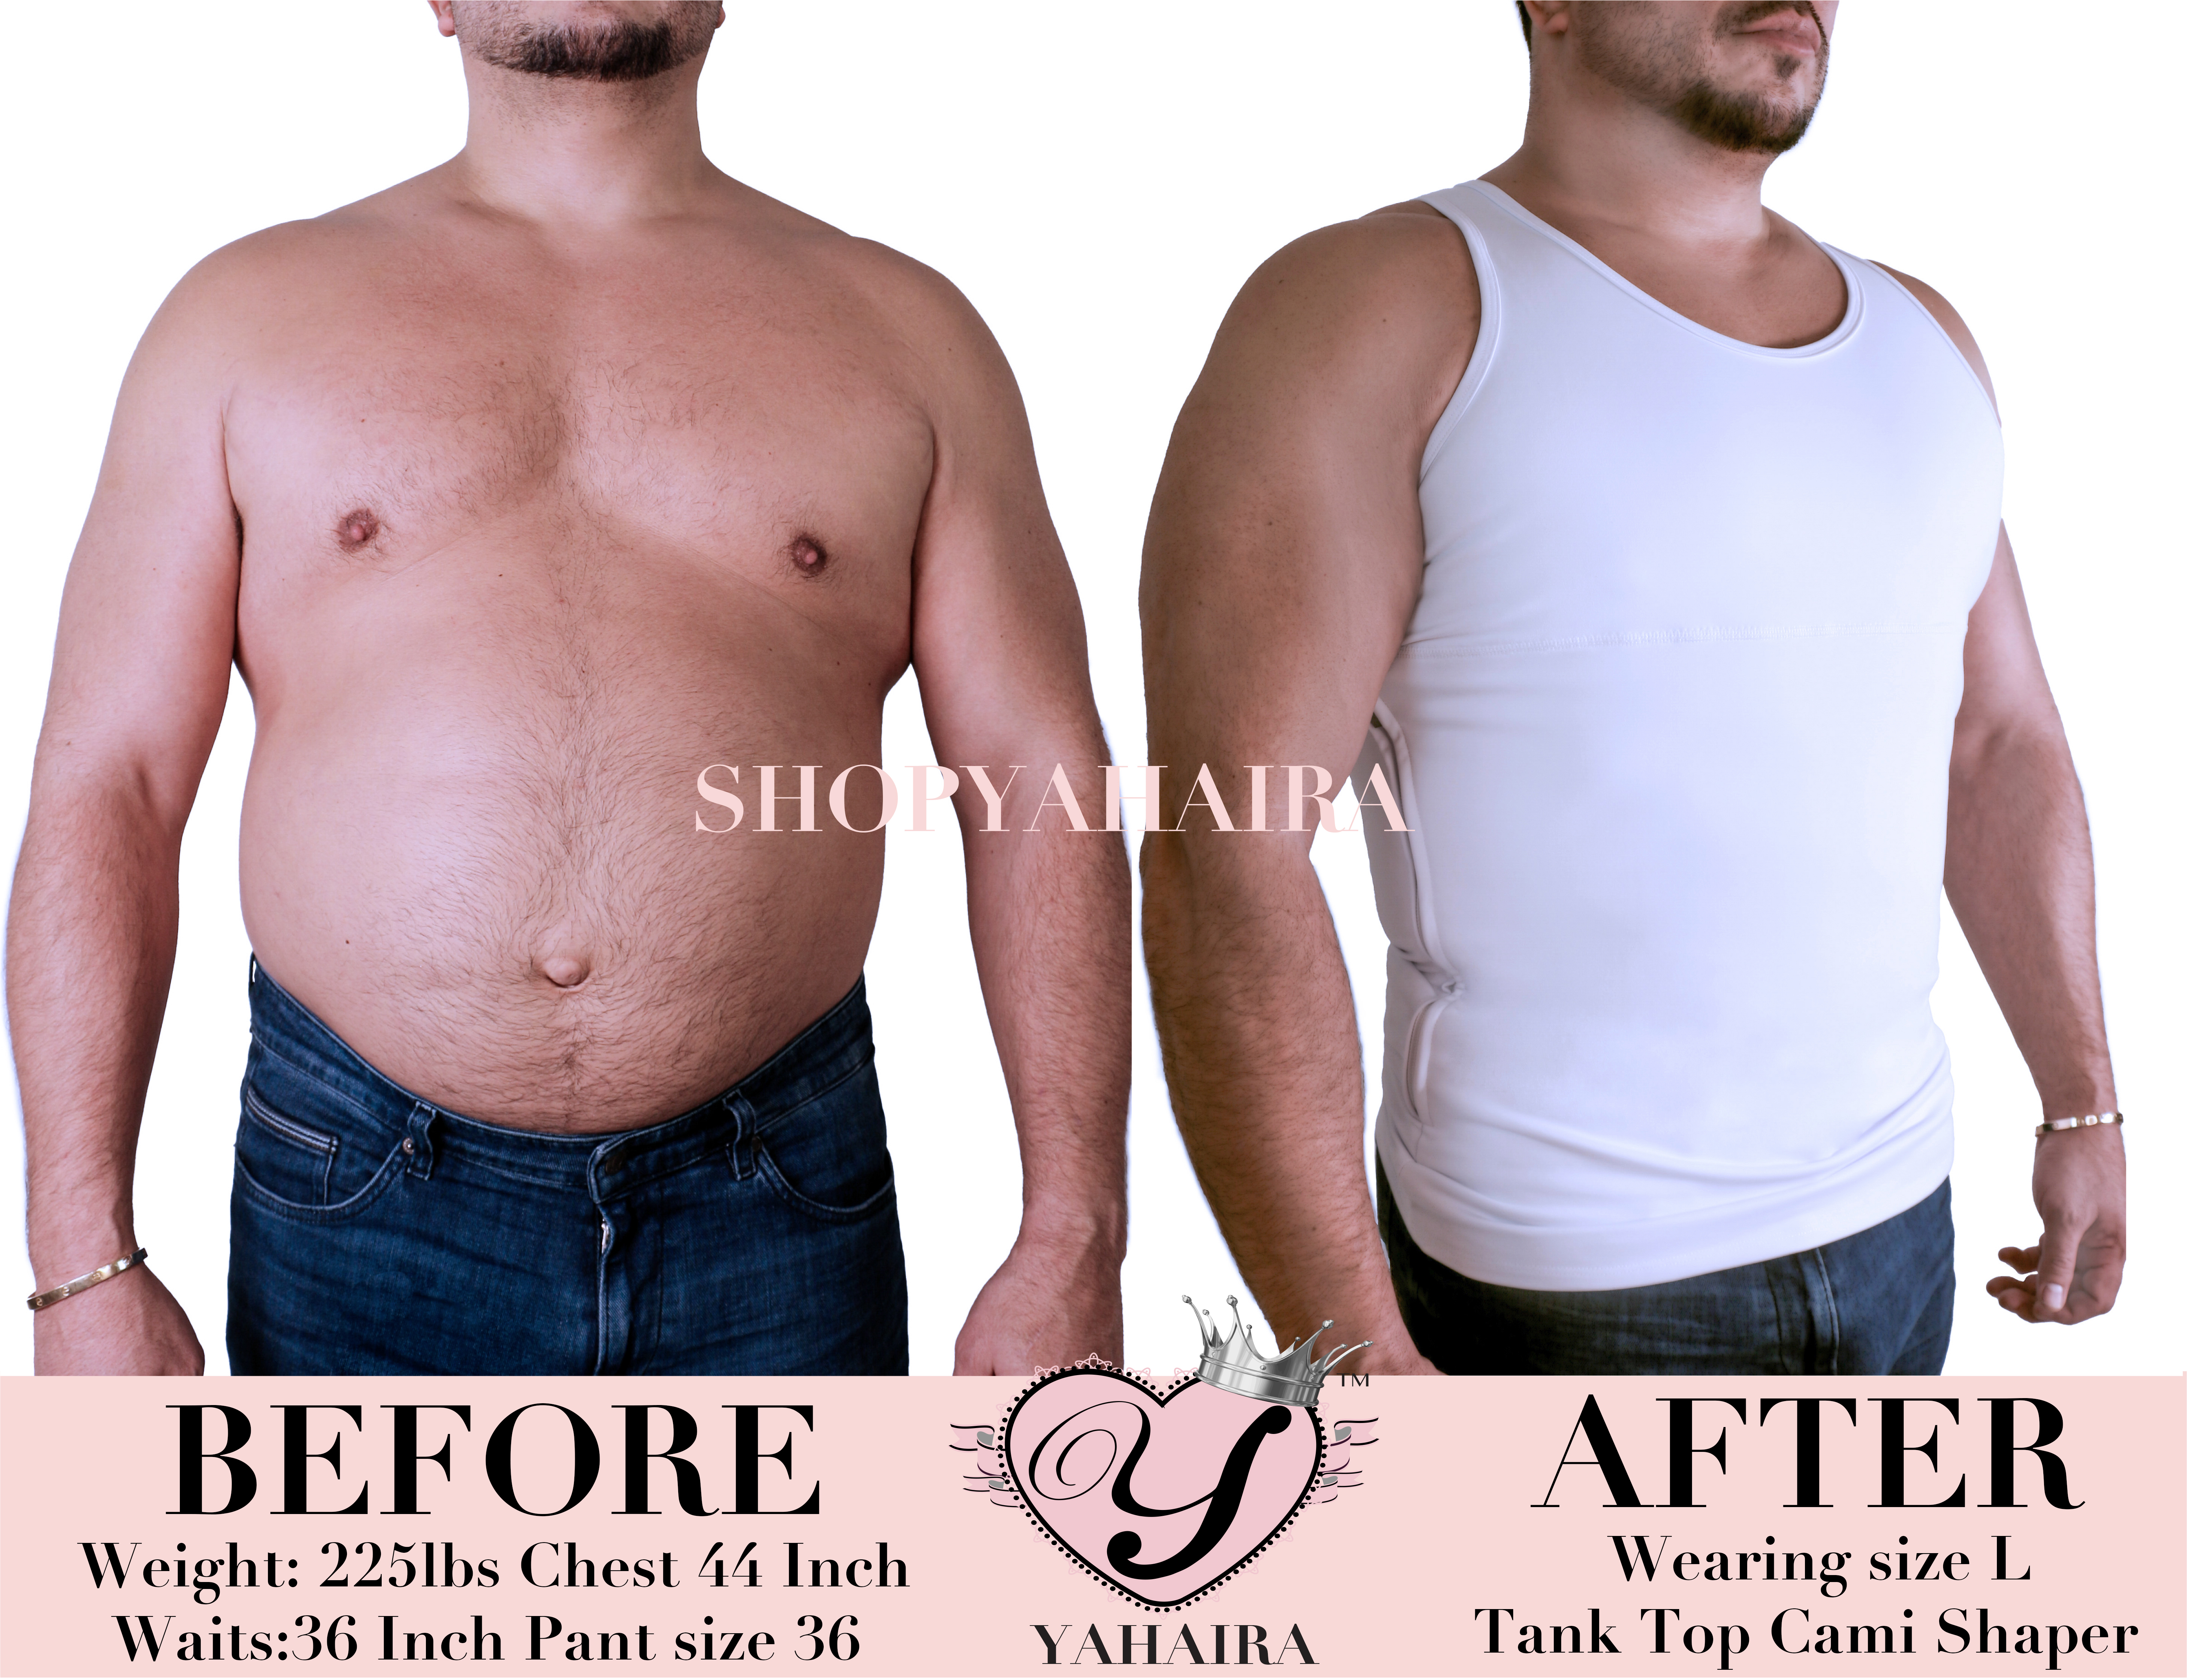 yes-perfect-before-and-after-shirt-cami-shaper-mans-before-and-after-water-mark-img-9520.jpg